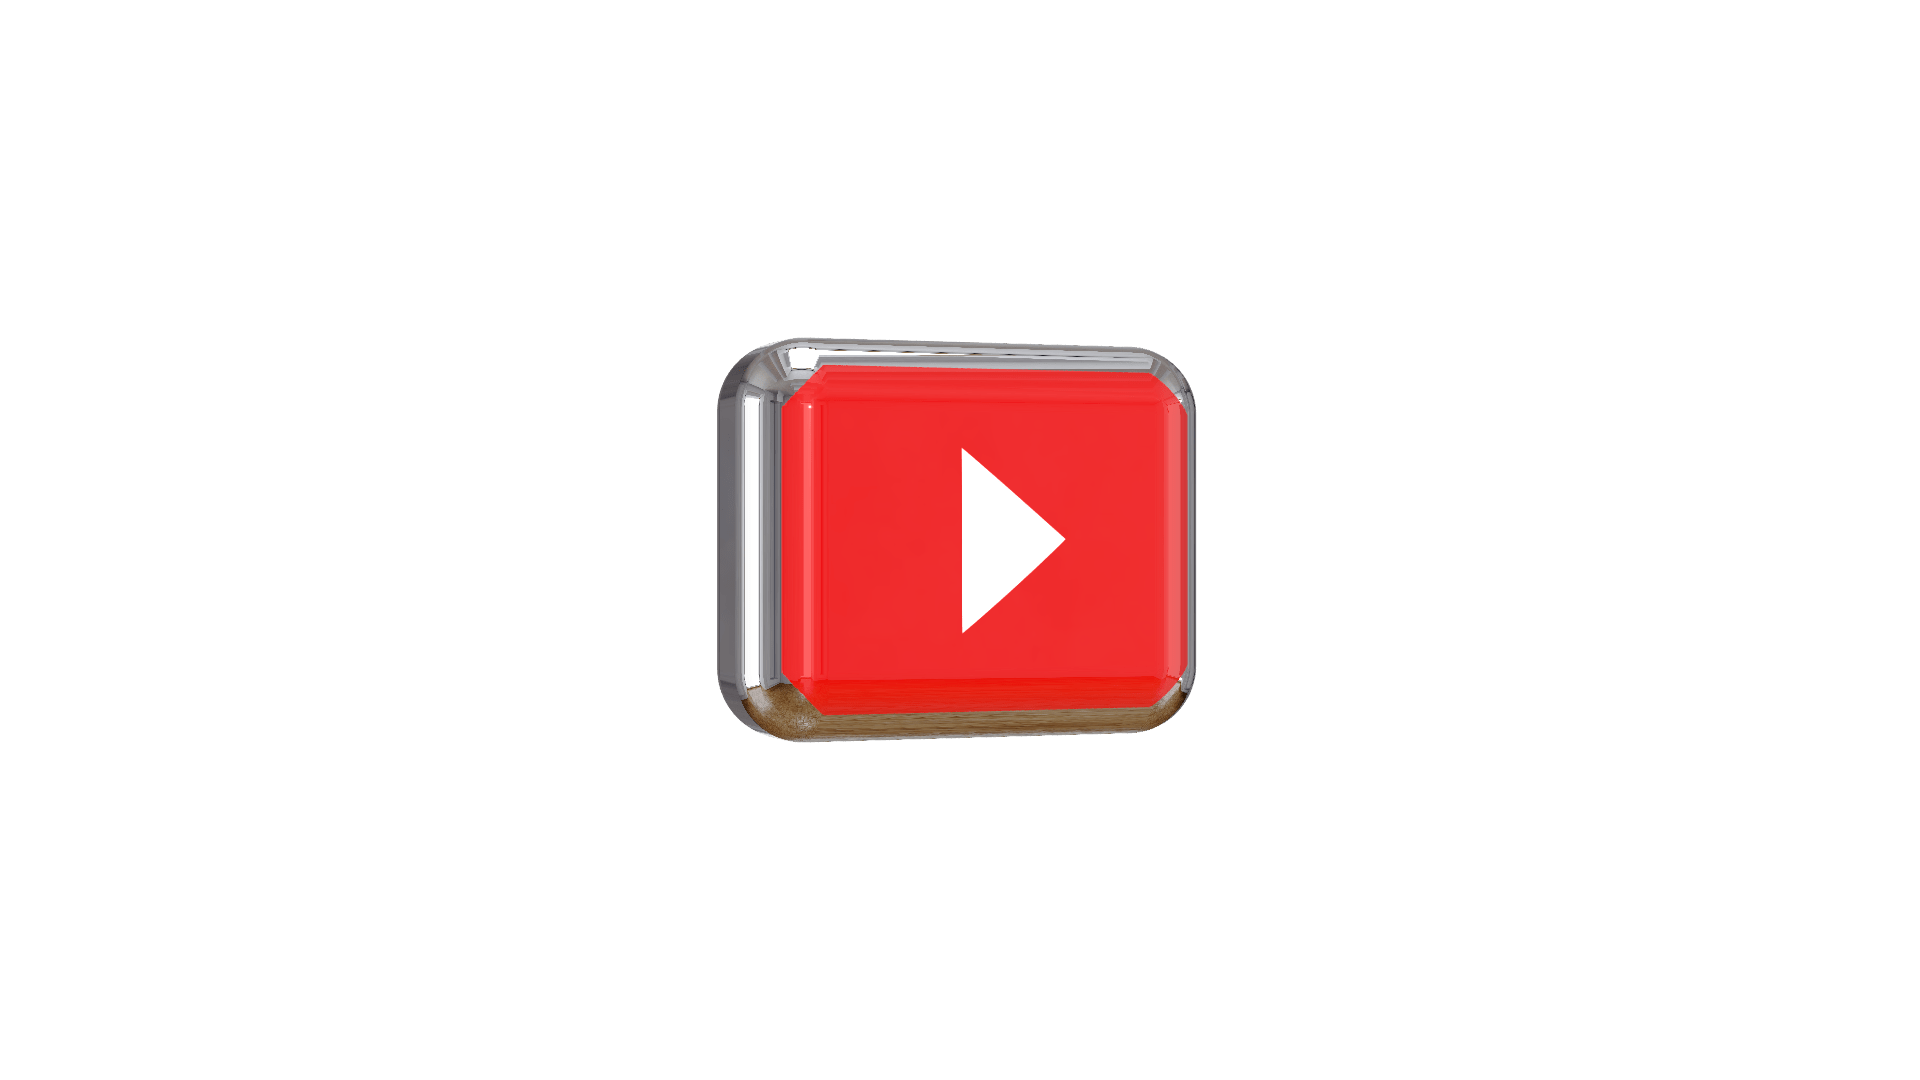 Youtube Subscribe Button And Bell Icon Full Set   PNG, AE ...